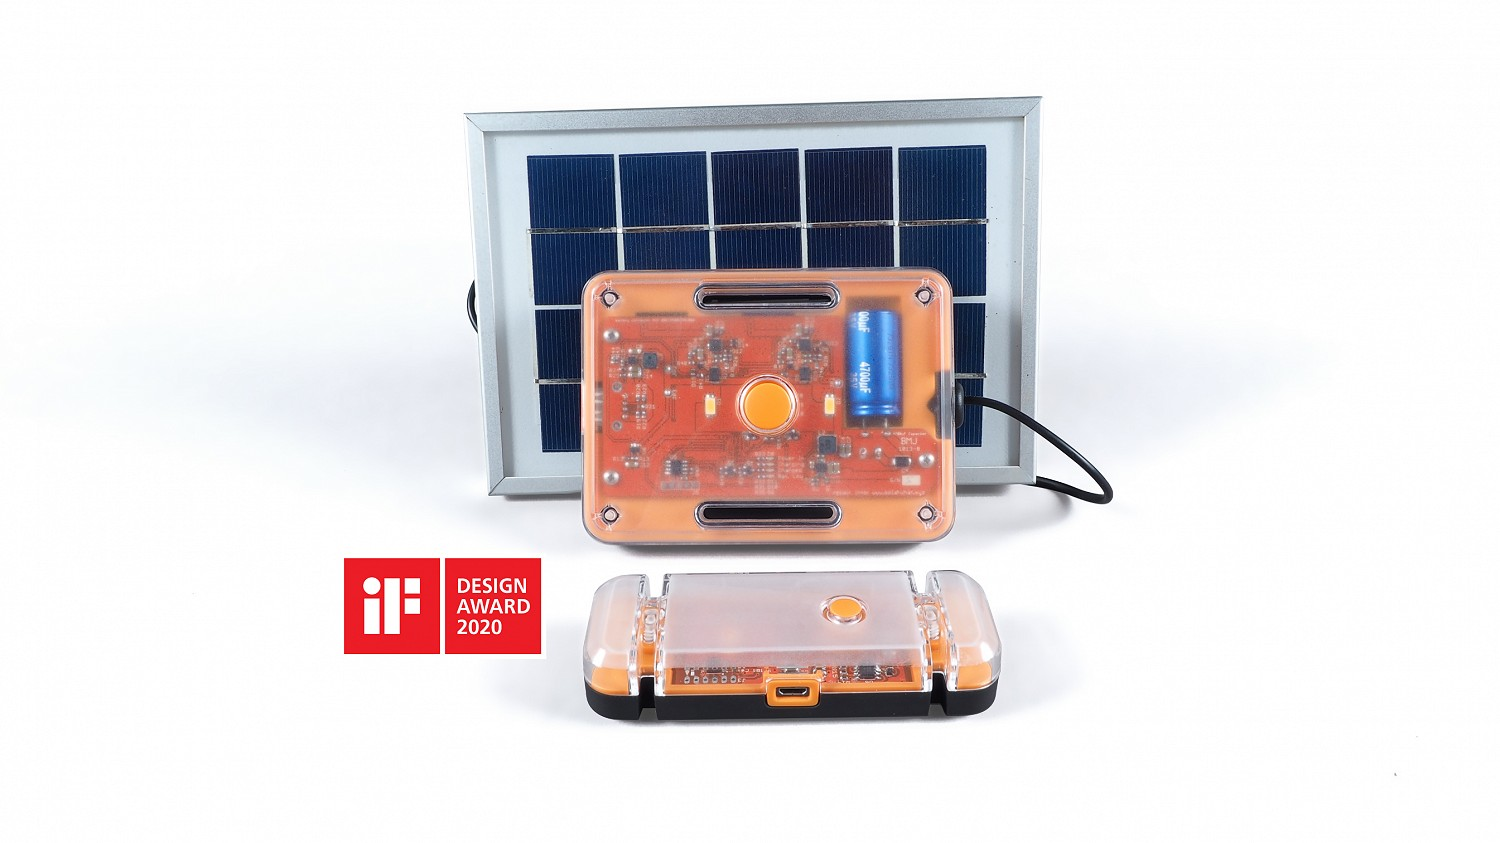 The Solar What device - a fully repairable, recyclable solar-powered light and charger